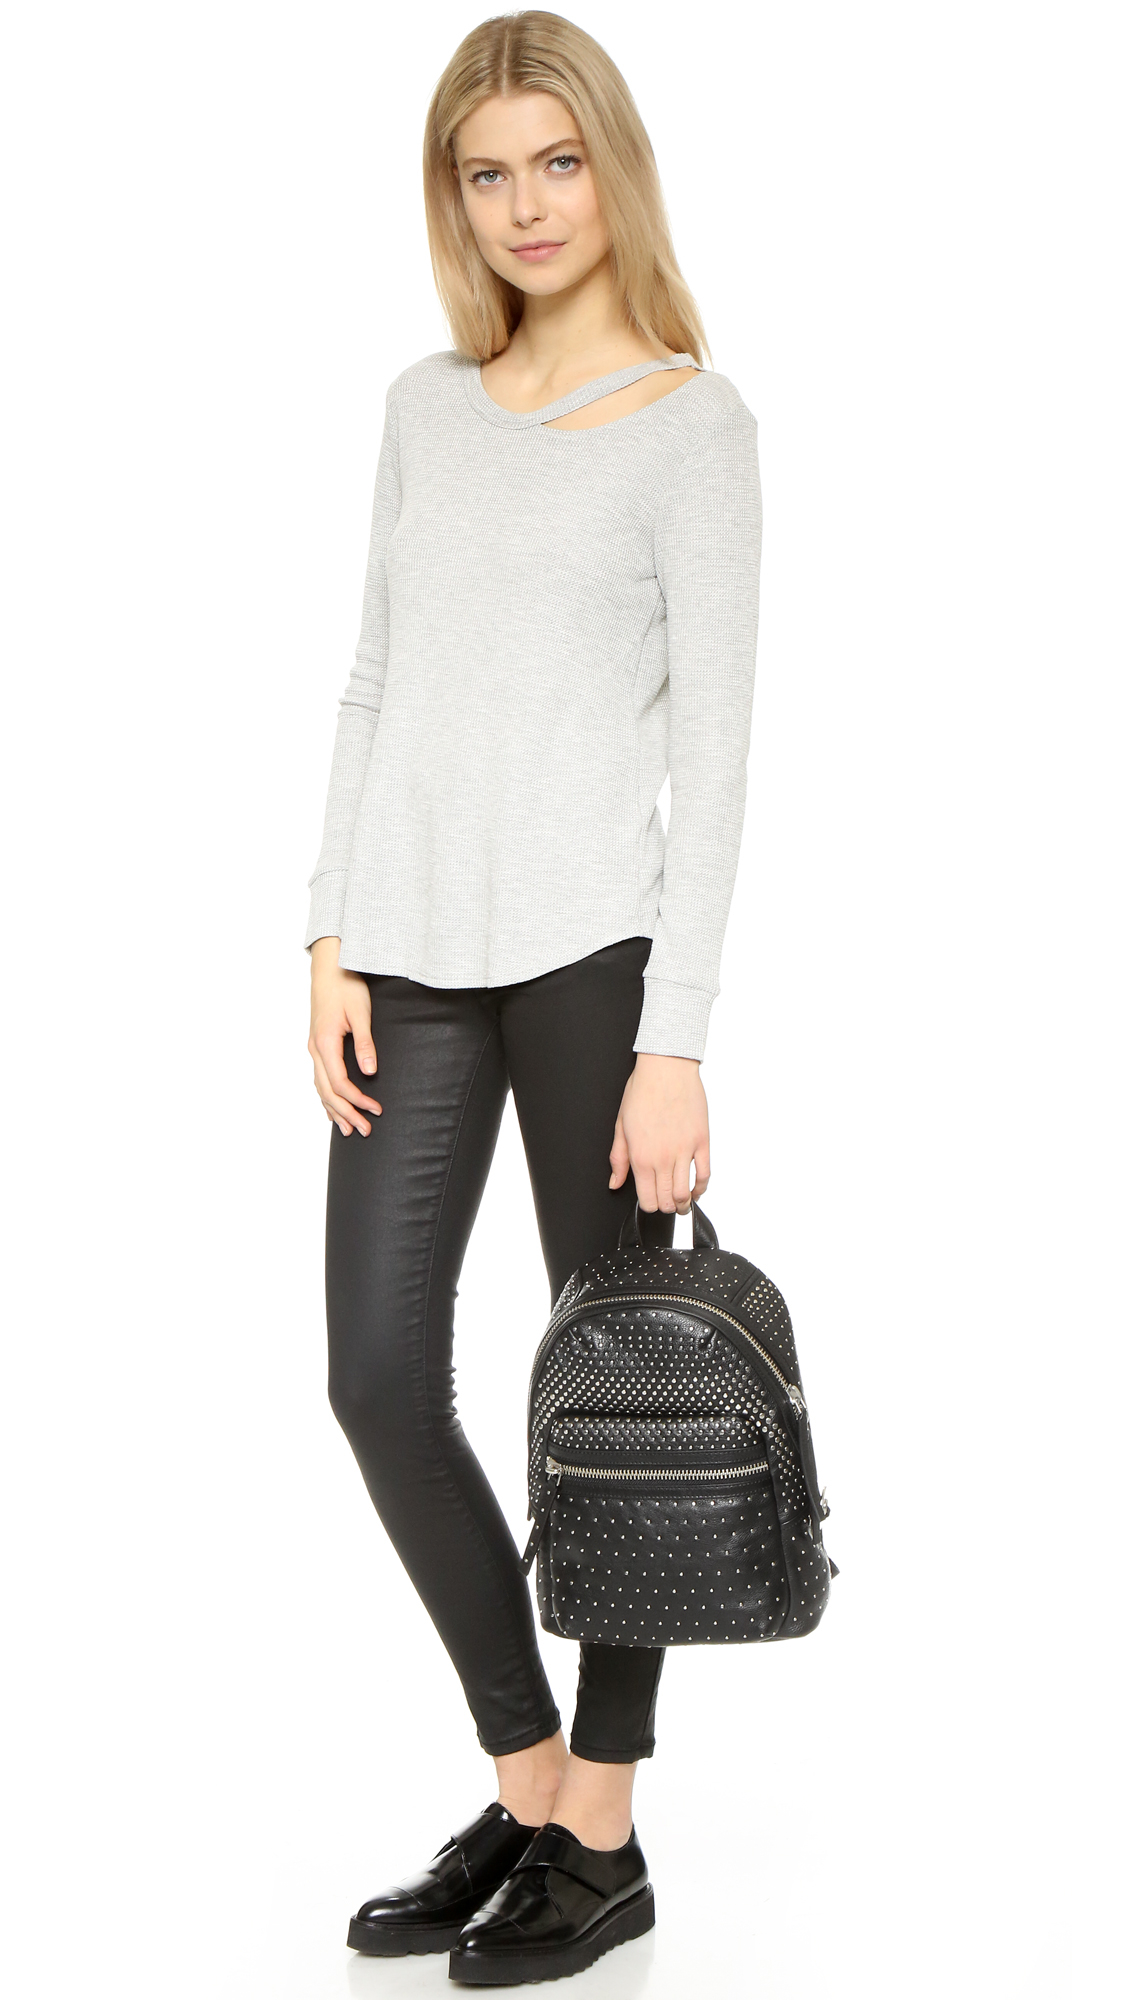 dee70729a46 Marc By Marc Jacobs Domo Biker Degrade-studs Backpack in Black - Lyst